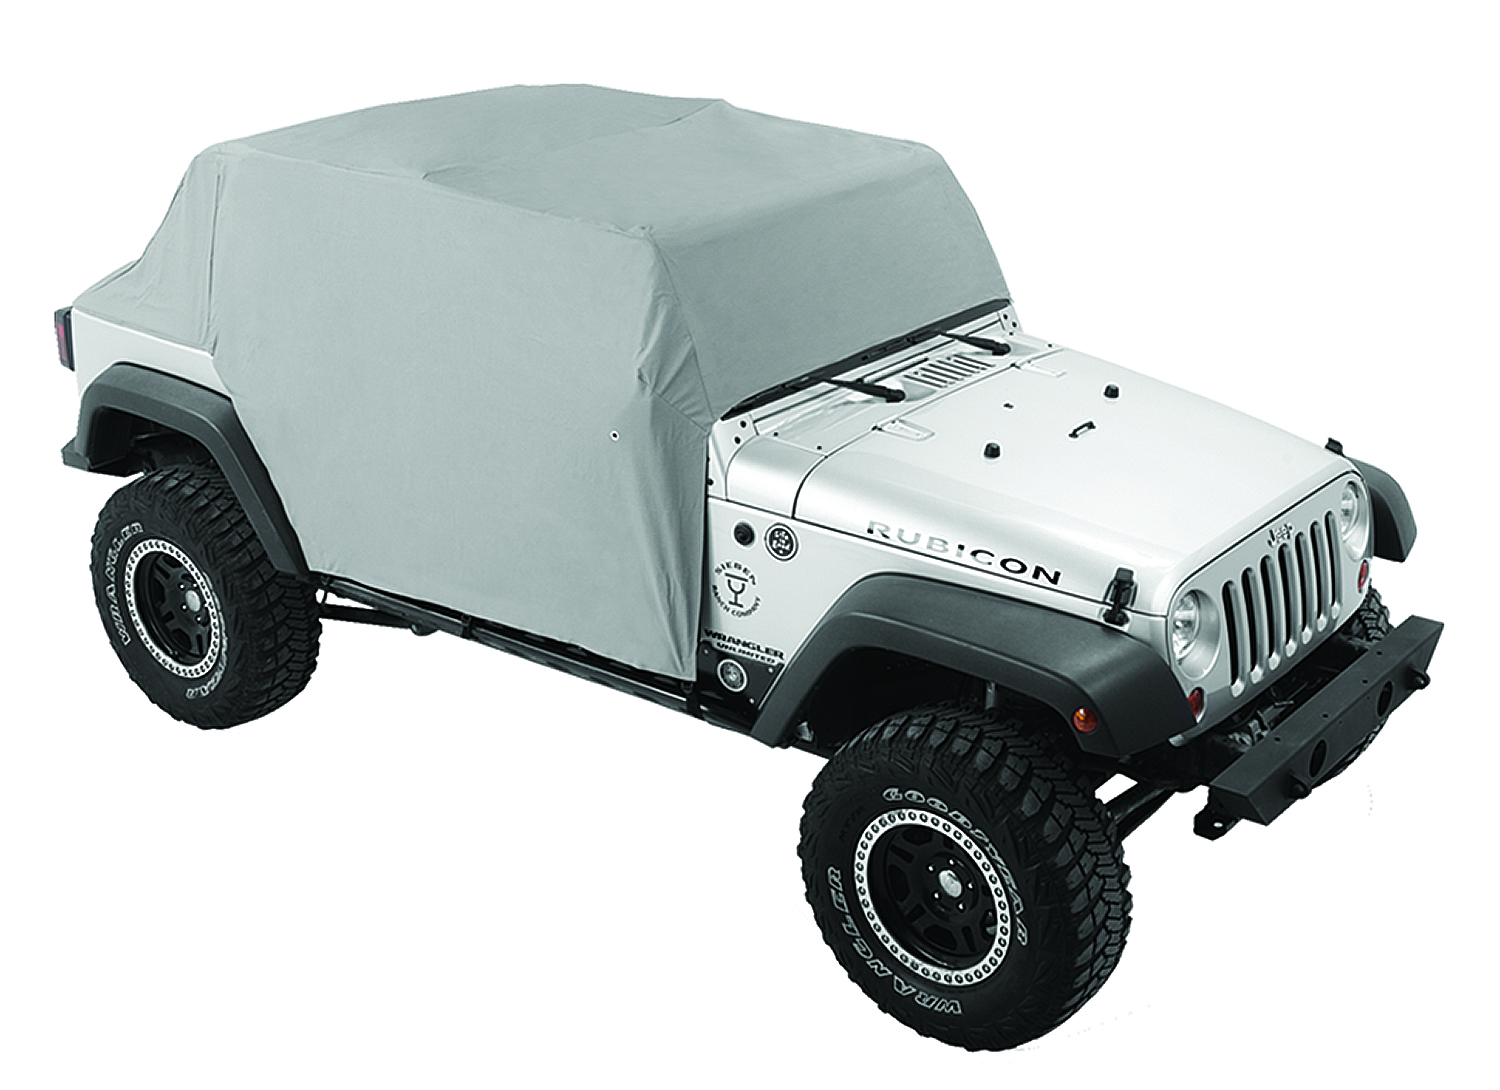 Pavement Ends 41731-09 By Bestop Charcoal Canopy Cover Jeep Wrangler 4-Door 2007-2018